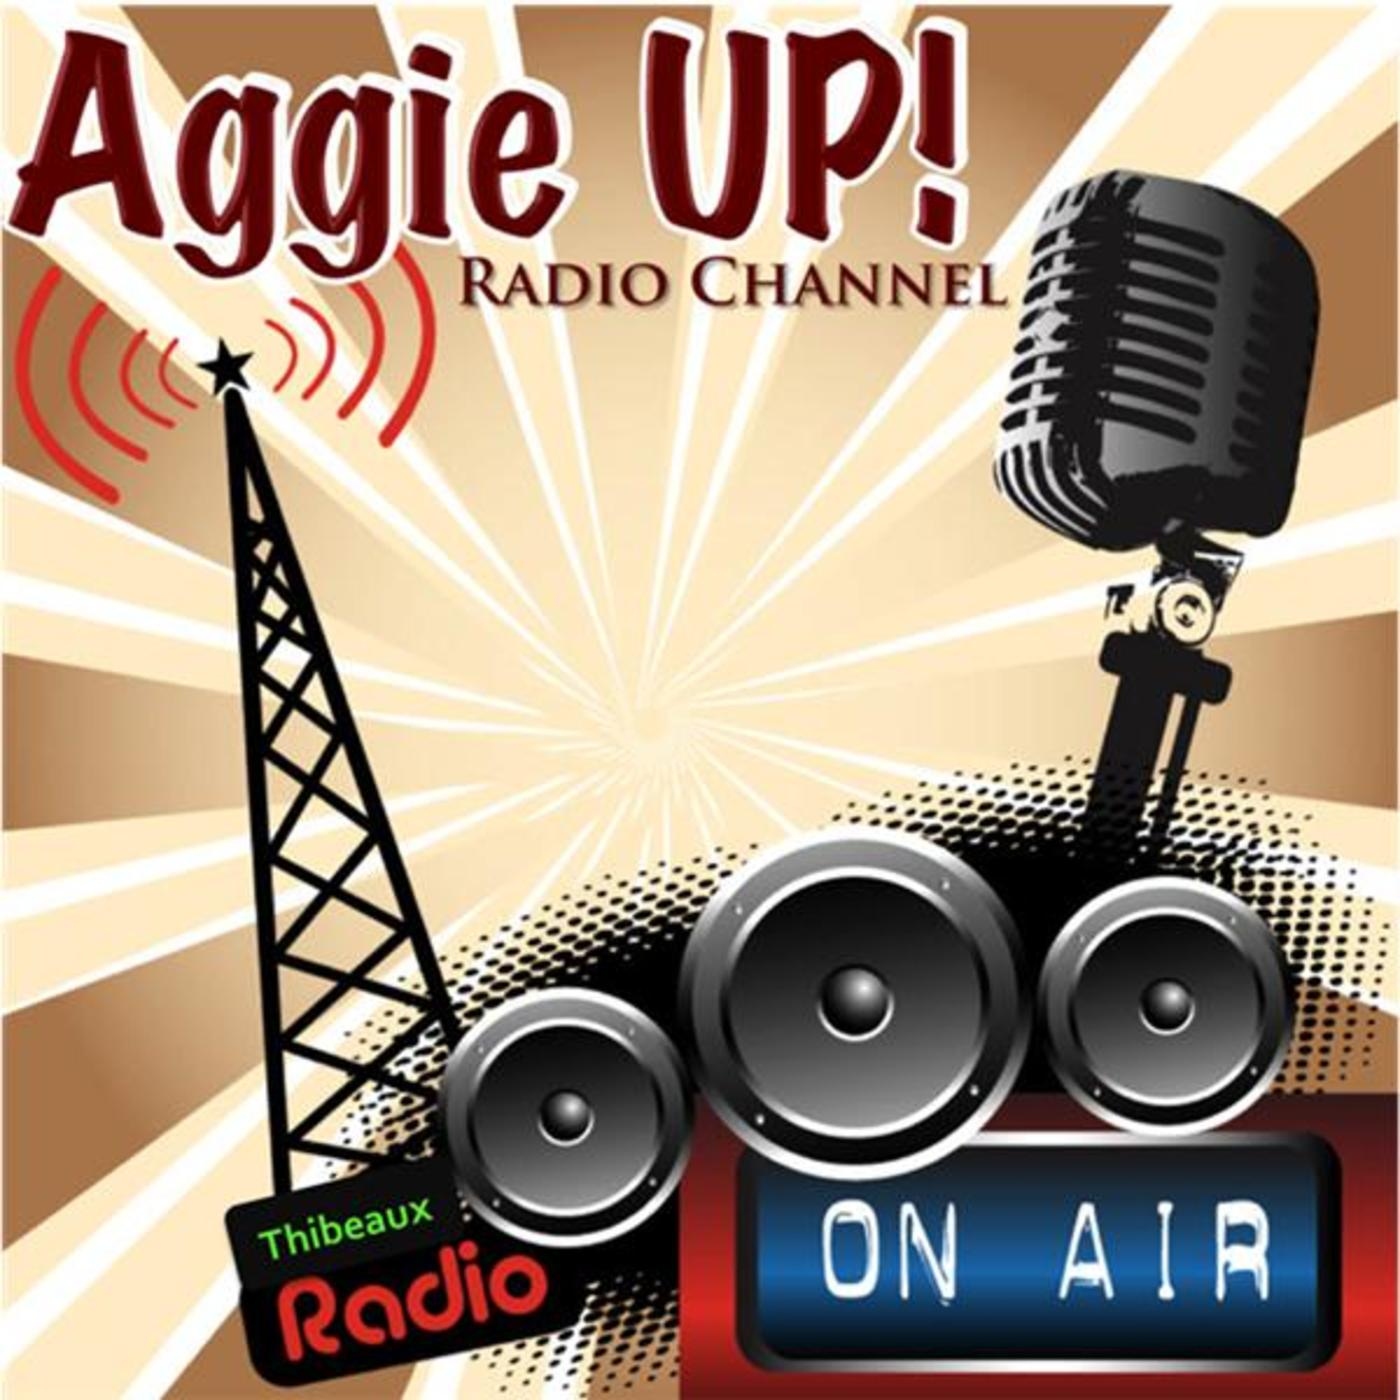 Aggie UP!